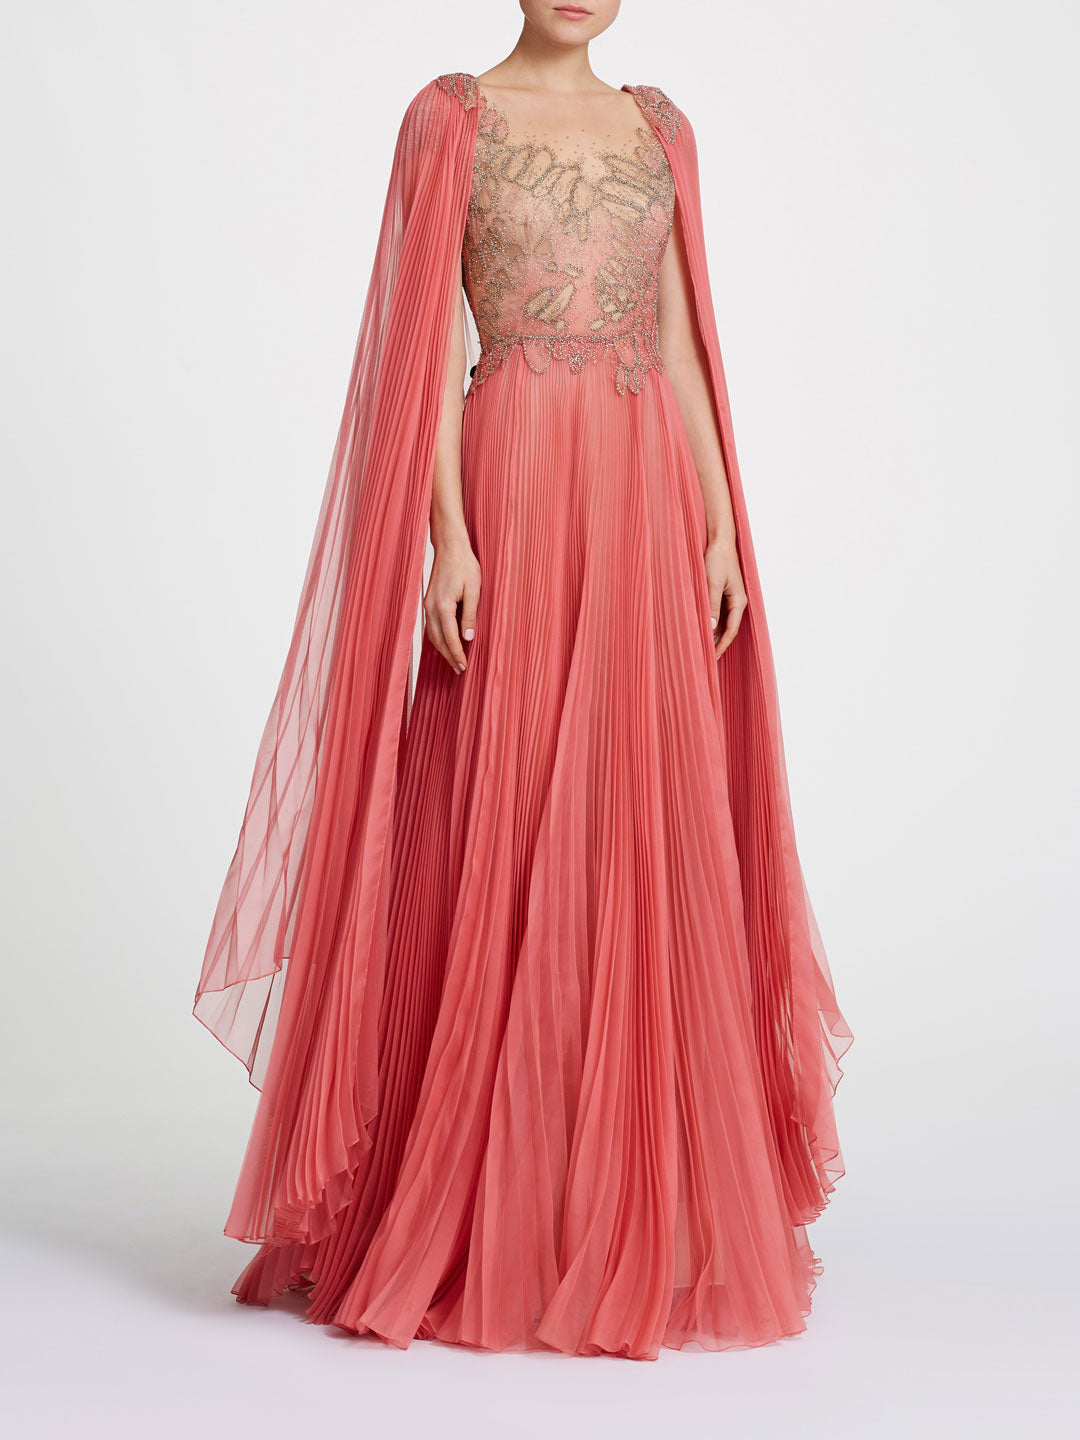 Pleated skirt gown with cape